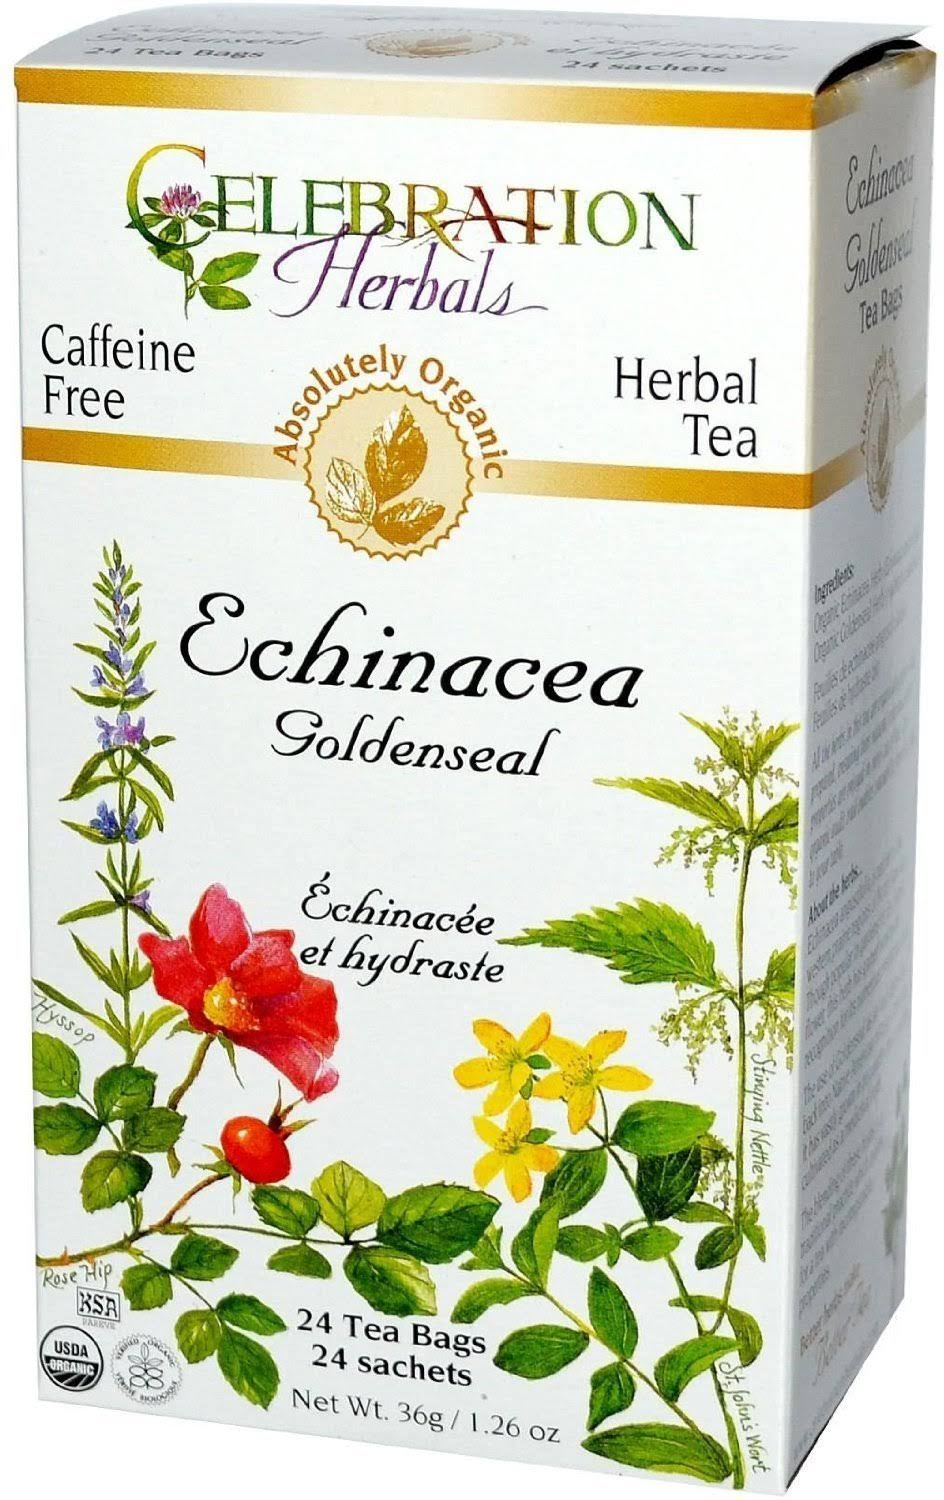 Celebration Herbals Echinacea Goldenseal Tea - 24 Tea Bags